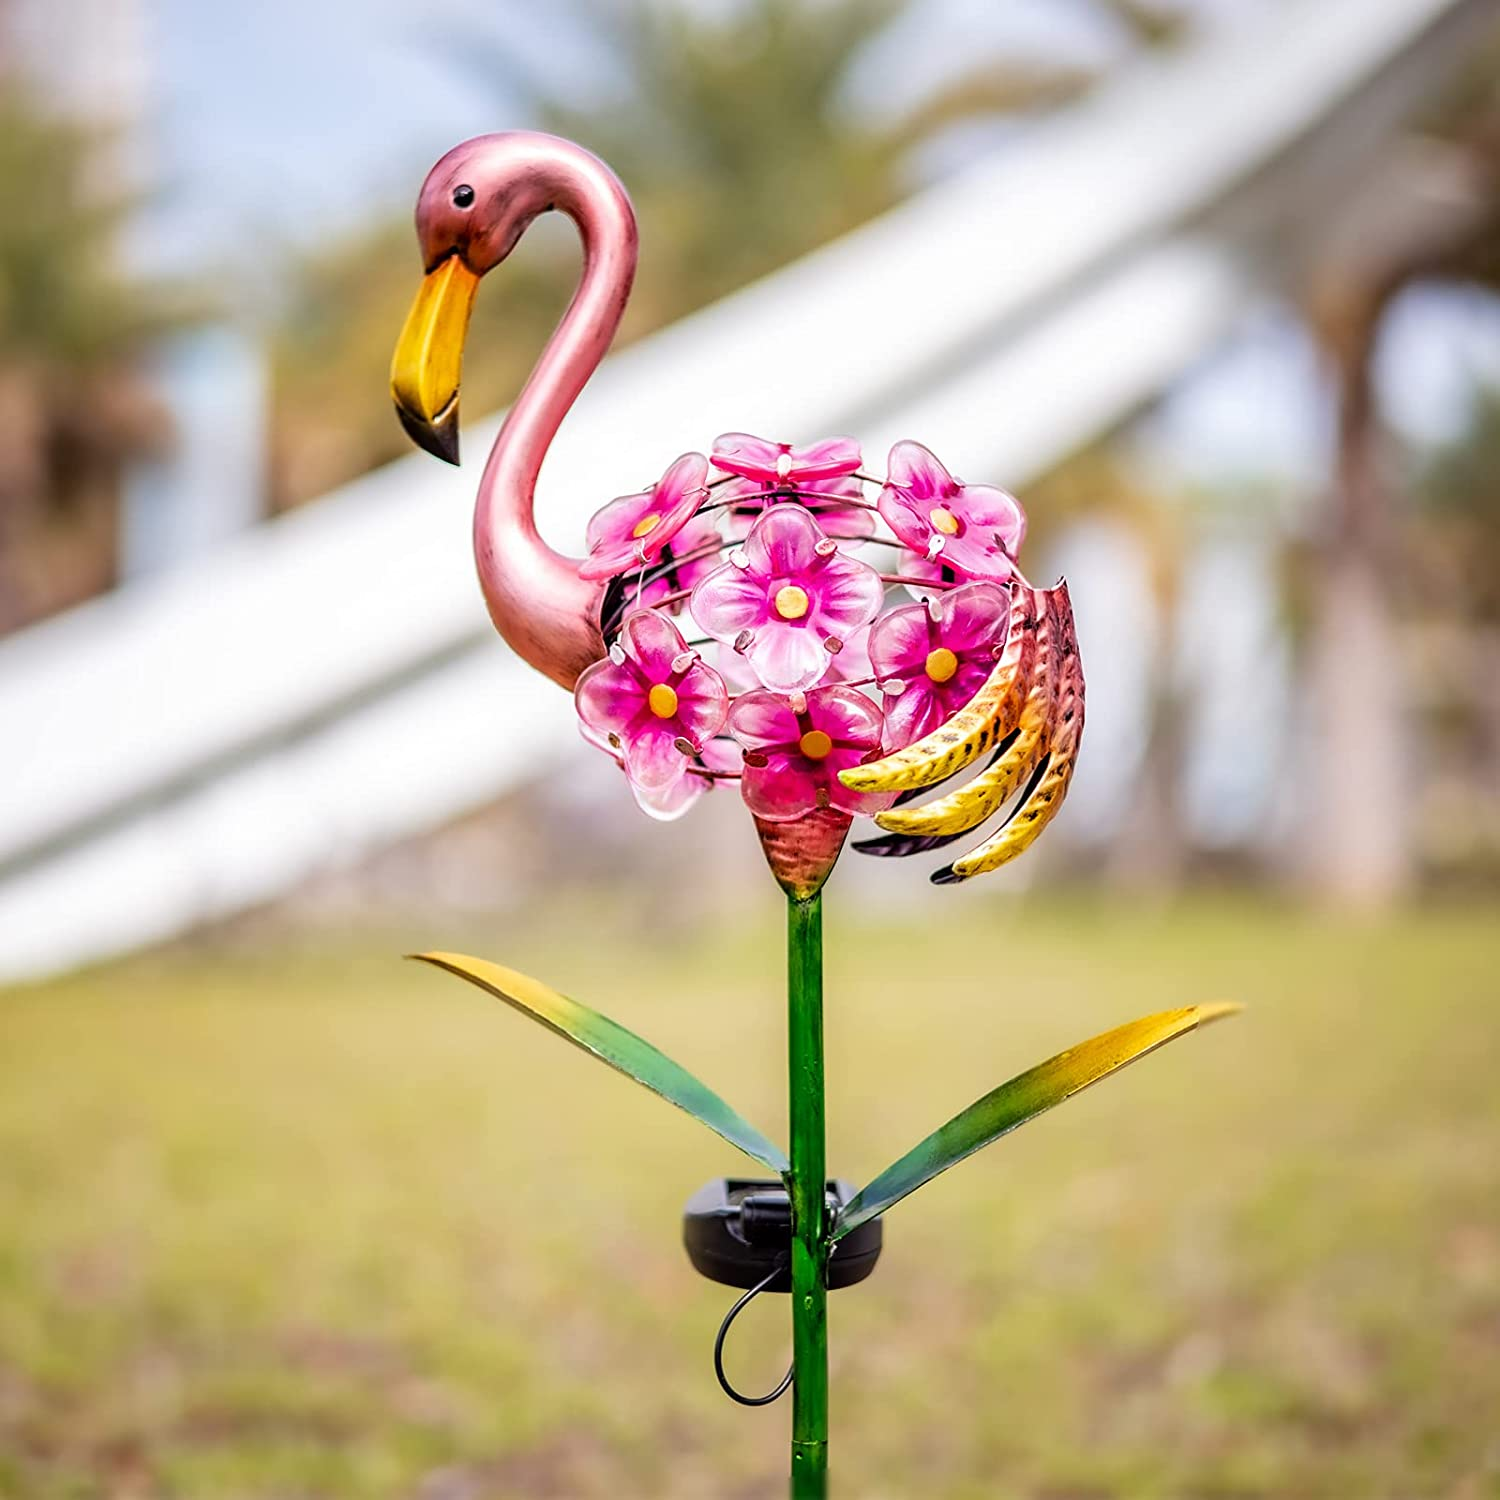 Afirst Solar Flamingo Lights - Outdoor Solar Garden Stakes Metal Decor Lights, Waterproof LED Decorative Lights for Pathway, Yard